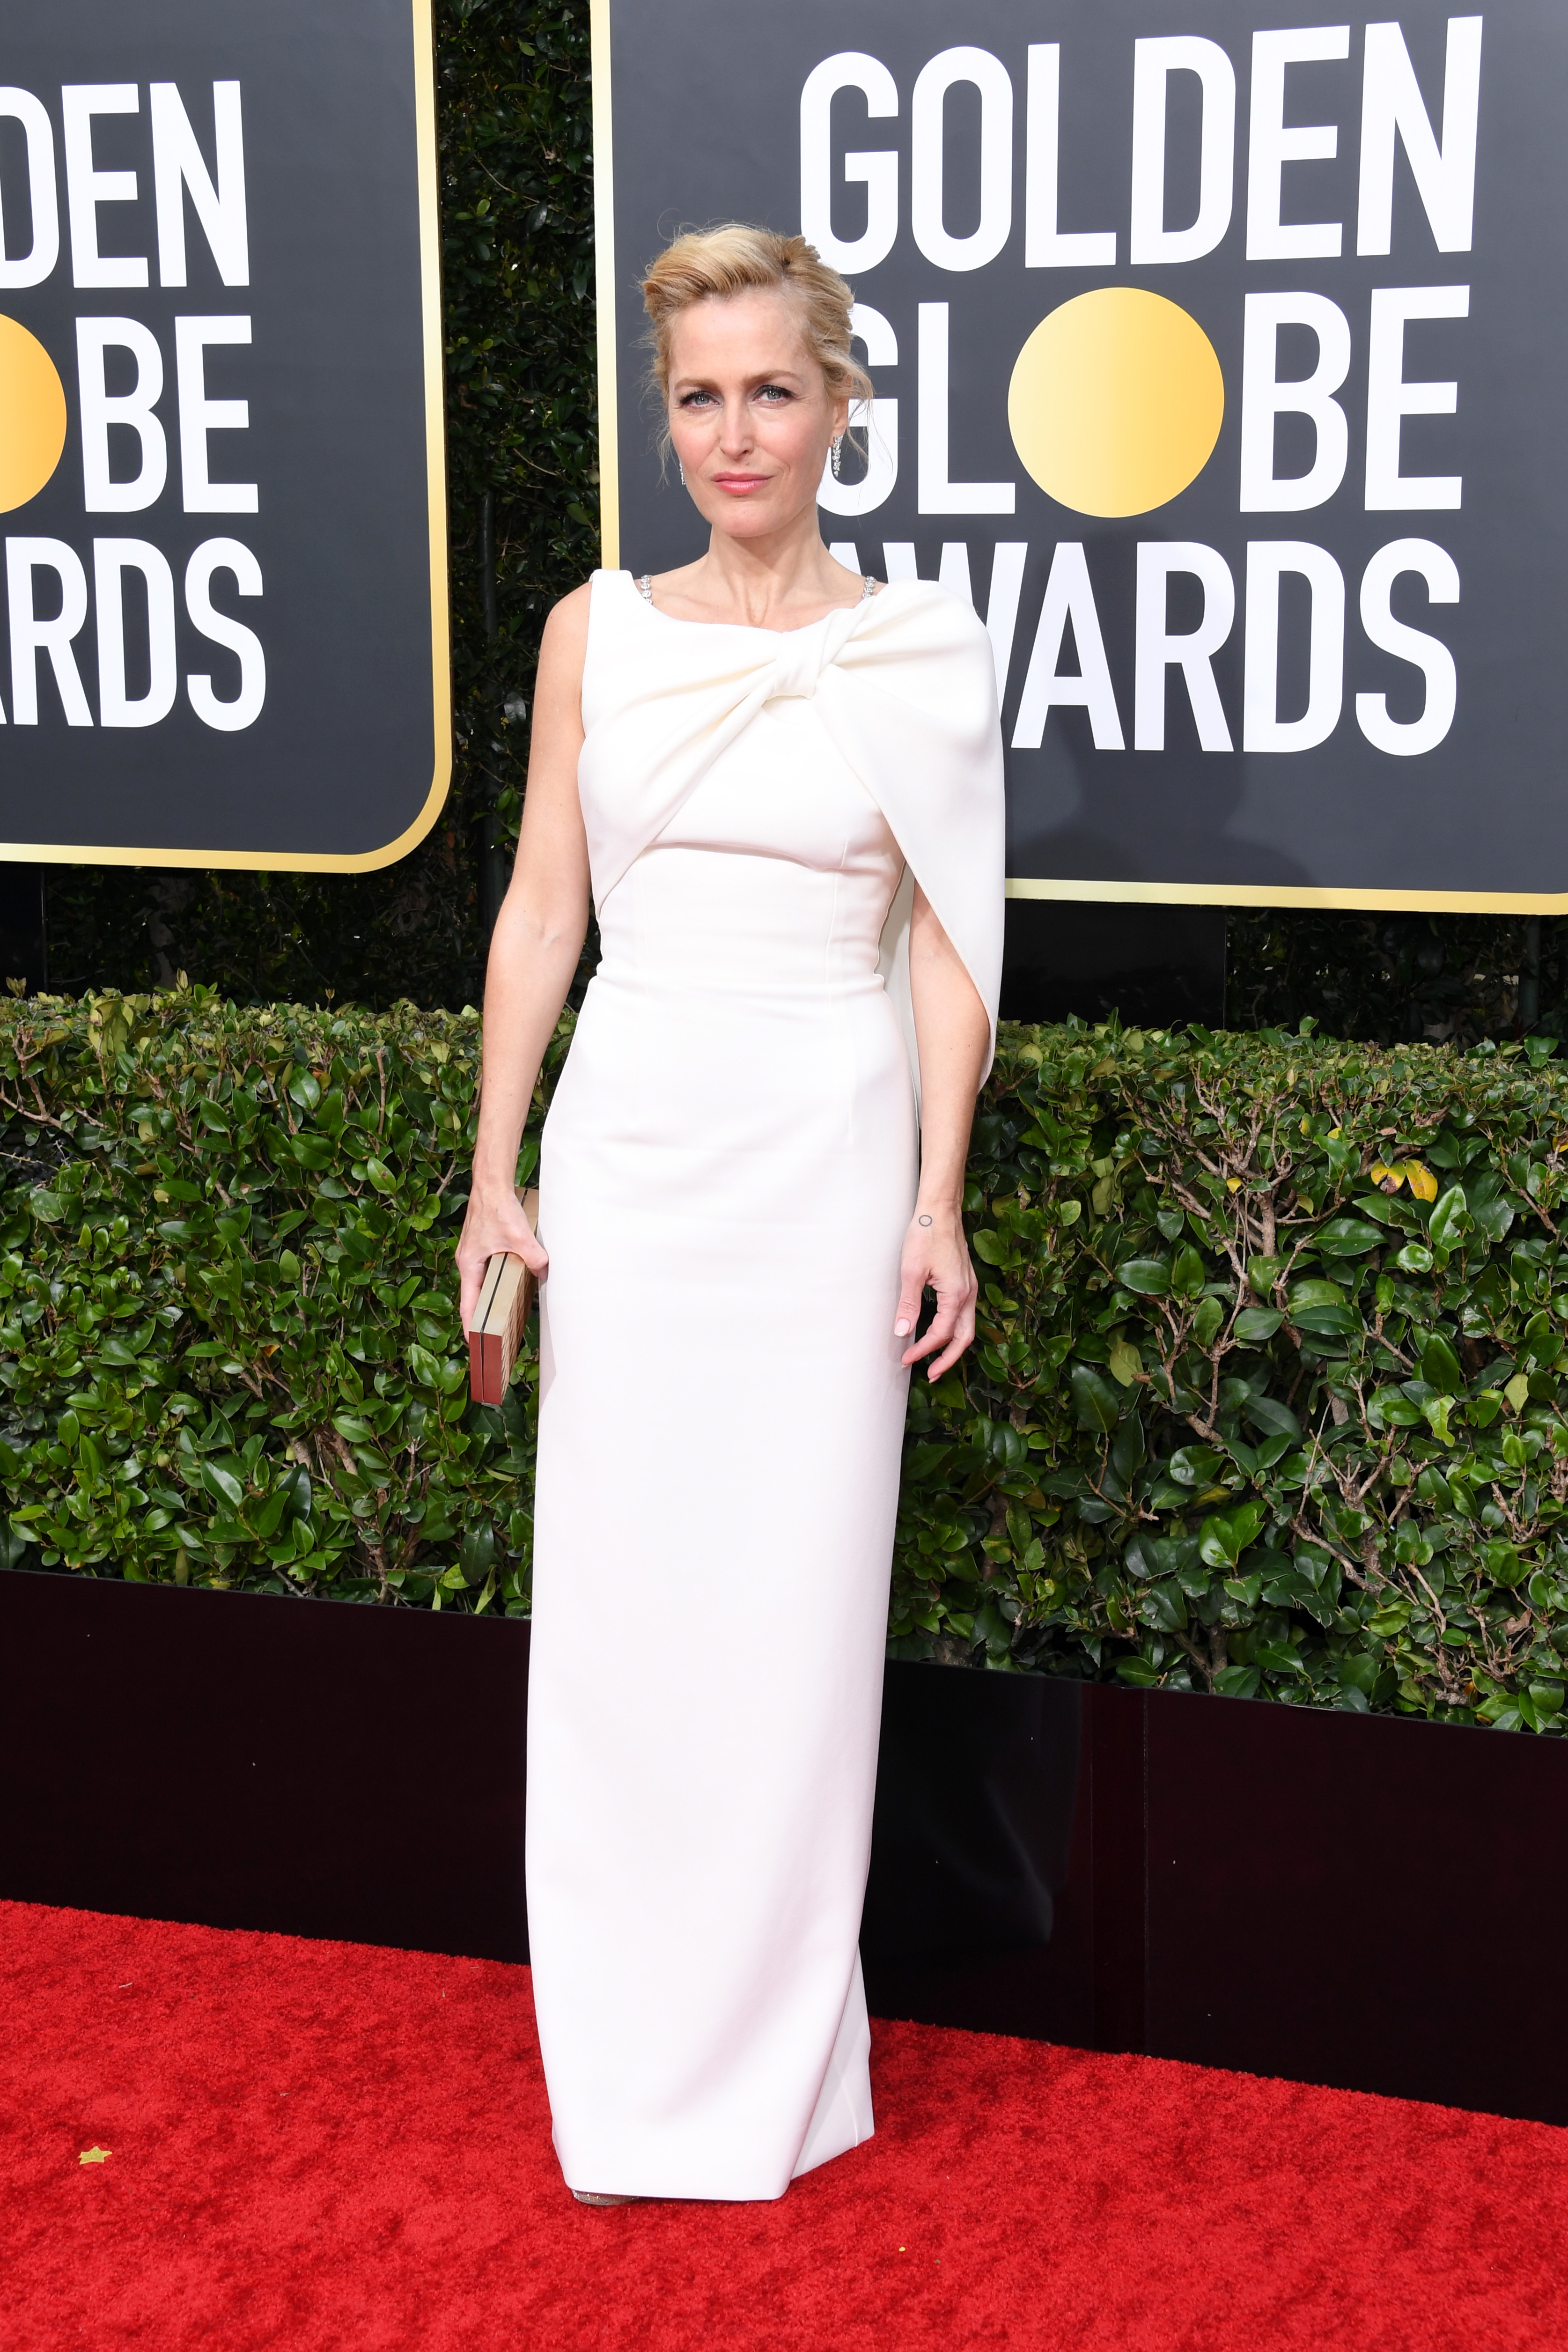 BEVERLY HILLS, CALIFORNIA - JANUARY 05: Gillian Anderson attends the 77th Annual Golden Globe Awards at The Beverly Hilton Hotel on January 05, 2020 in Beverly Hills, California. (Photo by Jon Kopaloff/Getty Images)